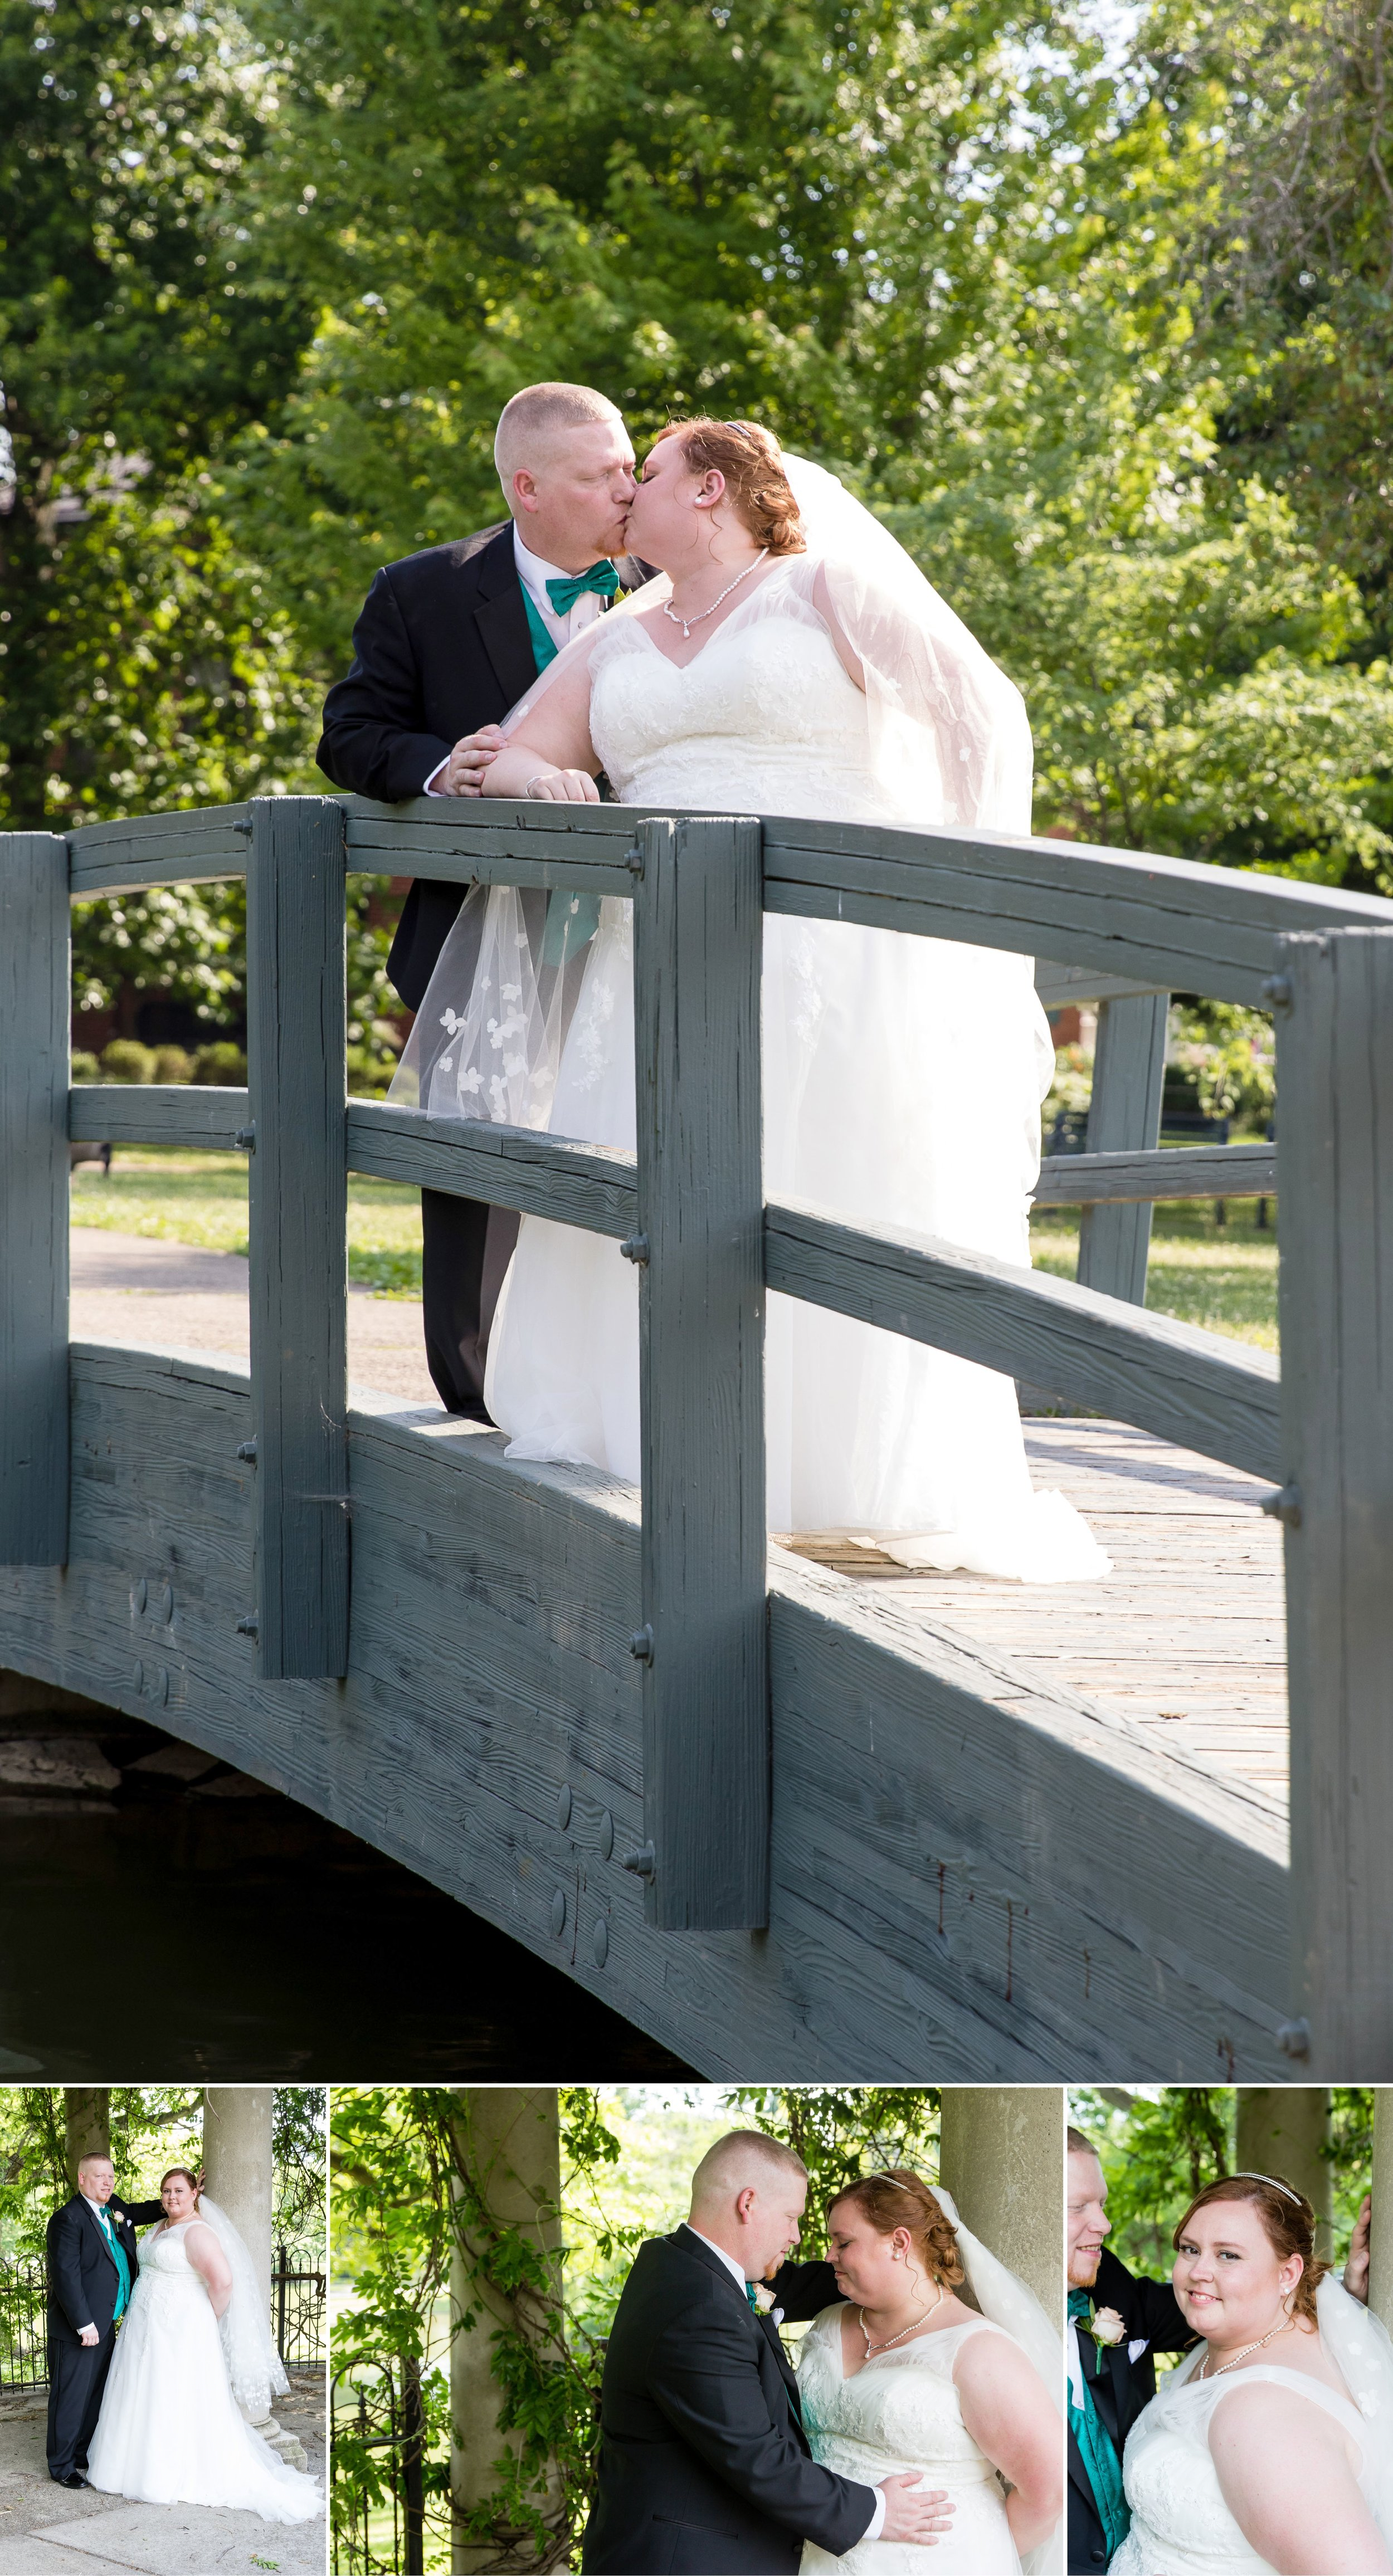 lighthouse-christian-ministries-wedding-ceremony-schiller-park-portraits-columbus-ohio-muschlitz-photography-011.JPG